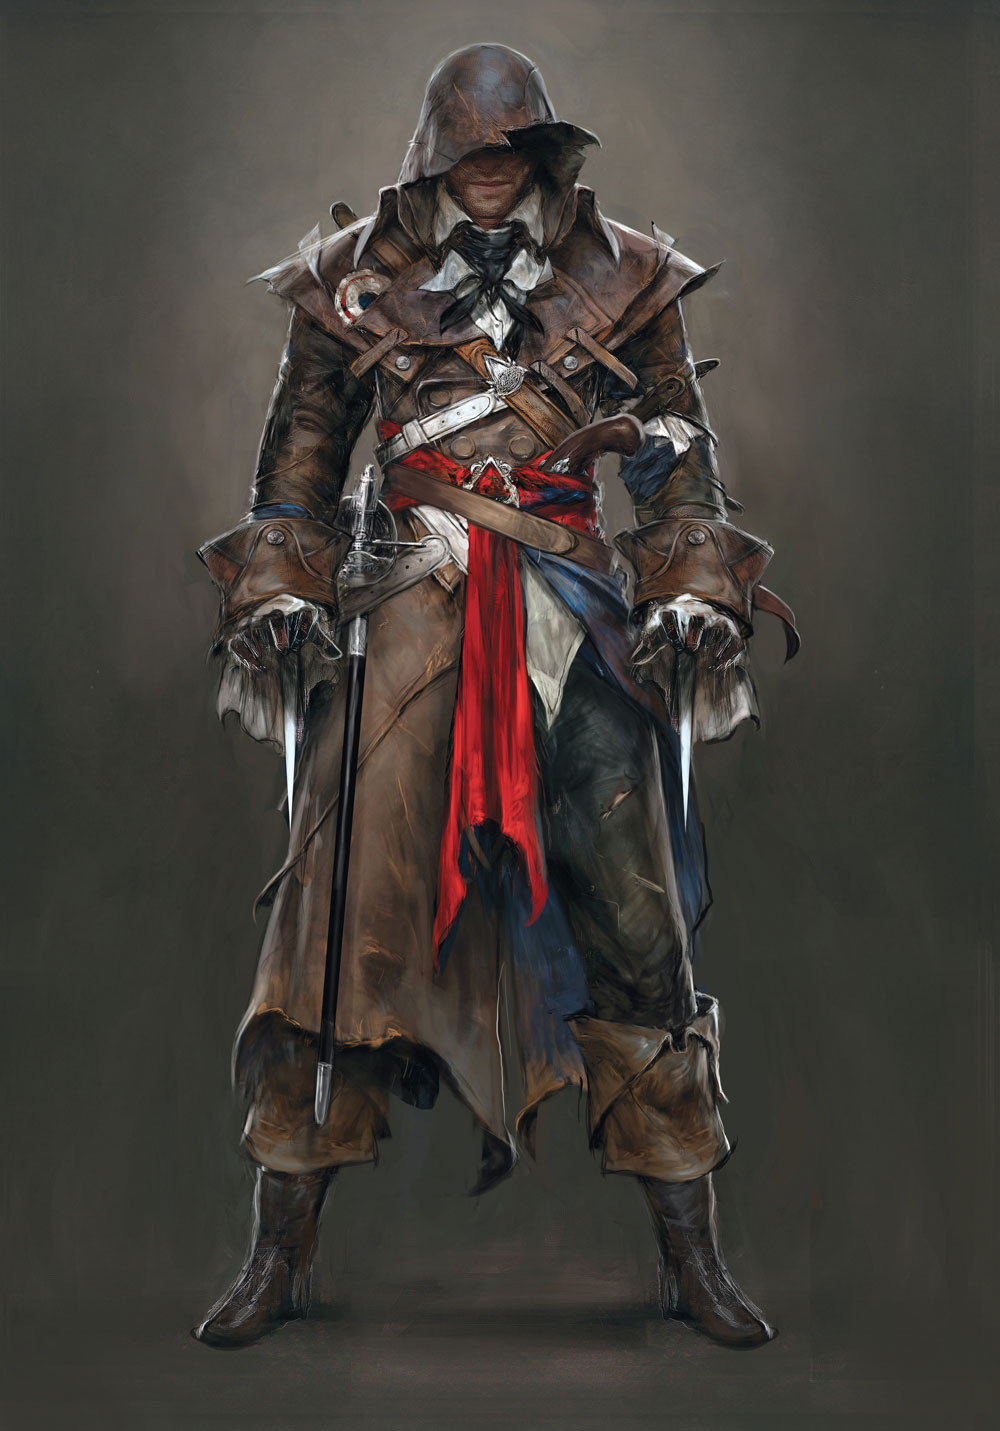 Assassin S Creed Unity S Concept Art Won T Get Any Complaints From